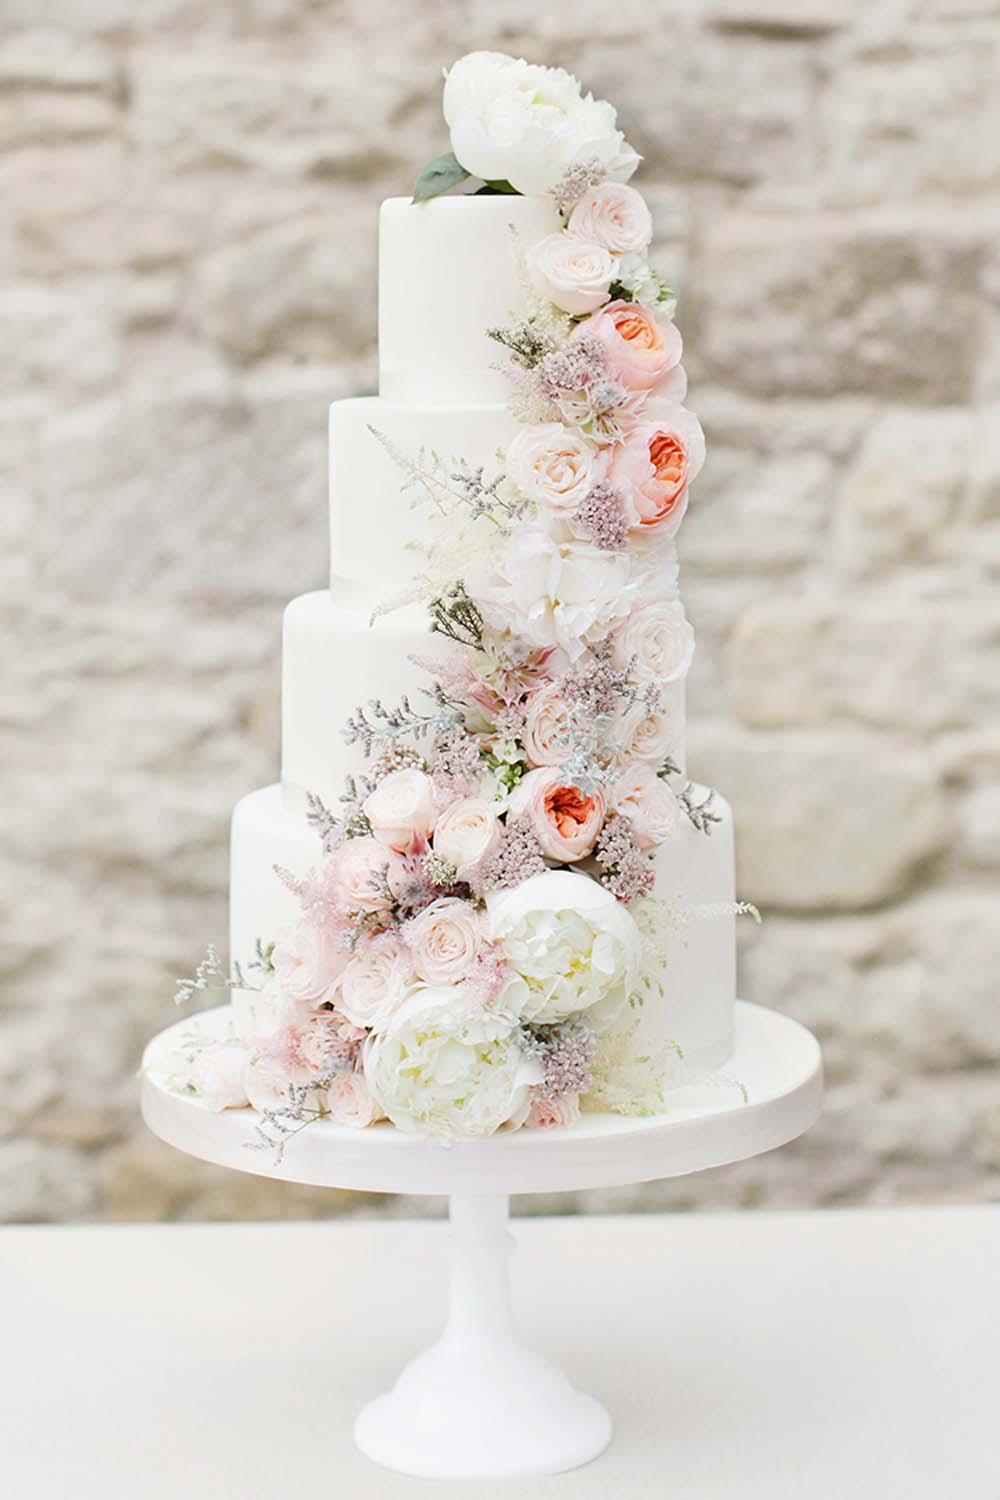 Fresh flower wedding cakes that could rival harry and meghans fresh flower wedding cakes that could rival harry and meghans fresh flower wedding cake junglespirit Images